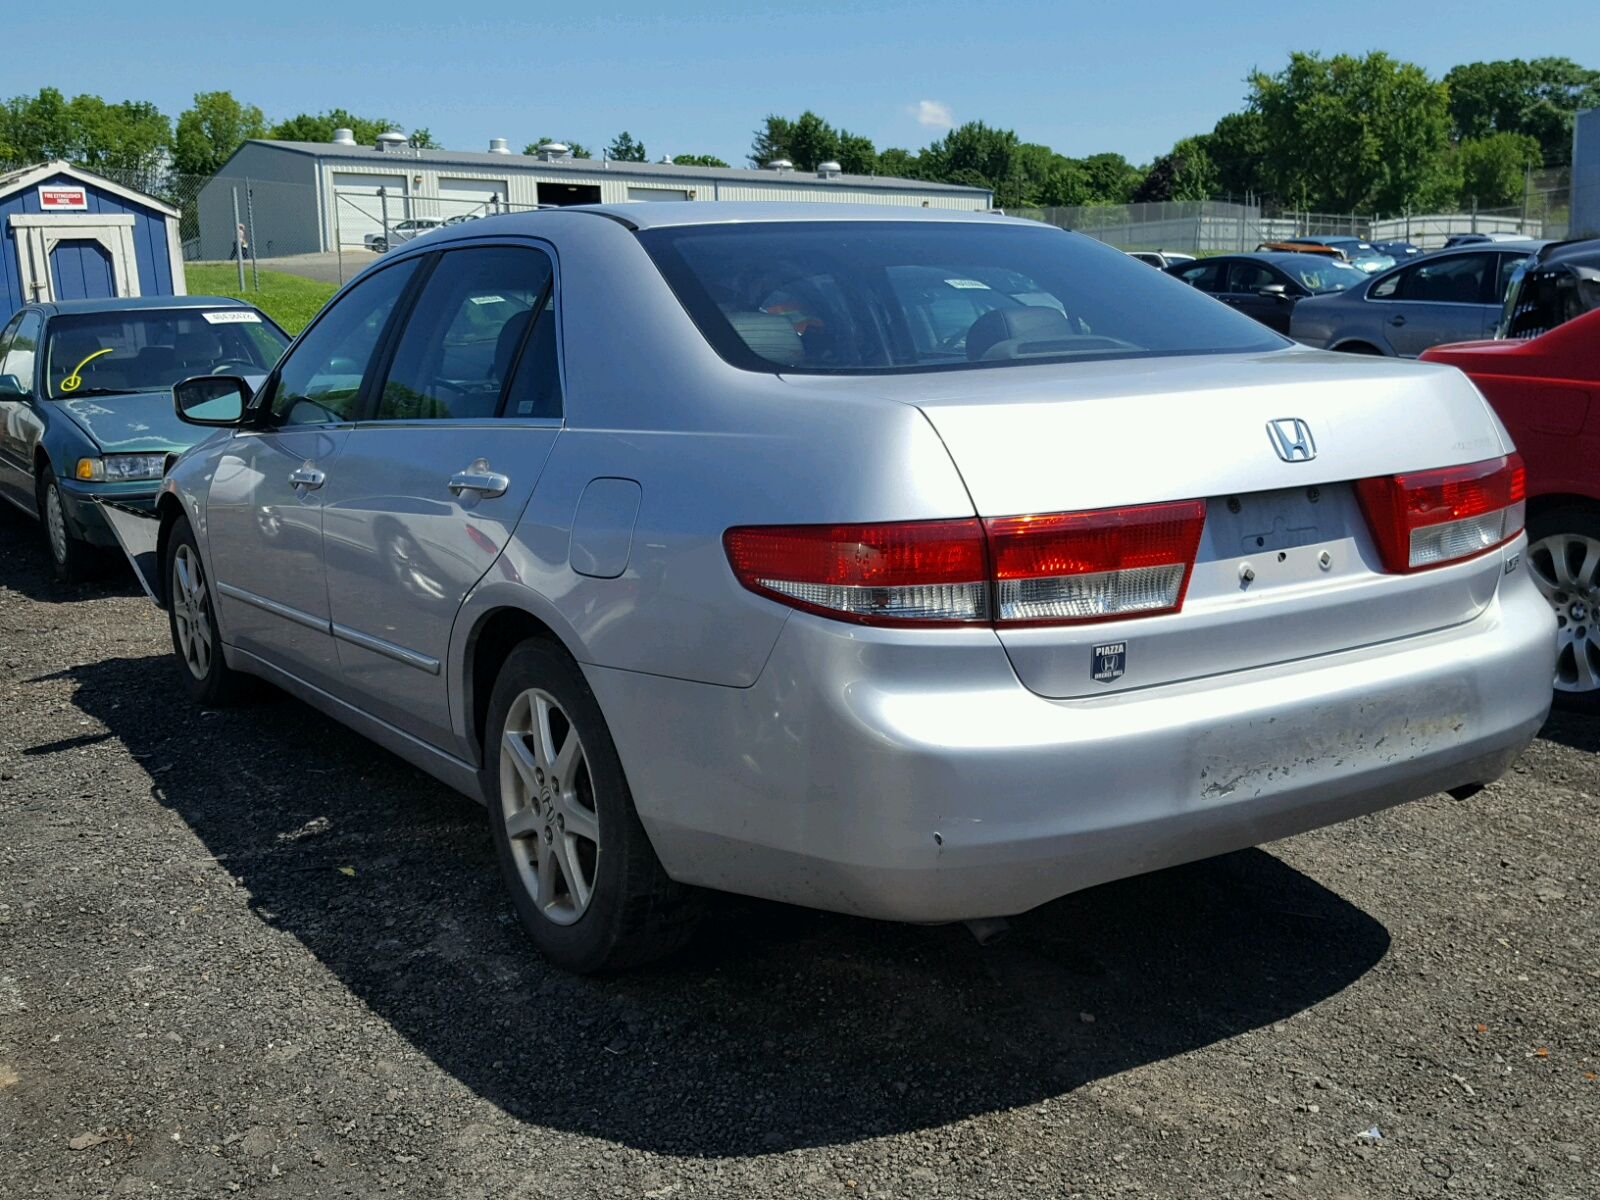 1hgcm66563a031261 2003 Silver Honda Accord Ex On Sale In Pa Tail Light 30l Angle View